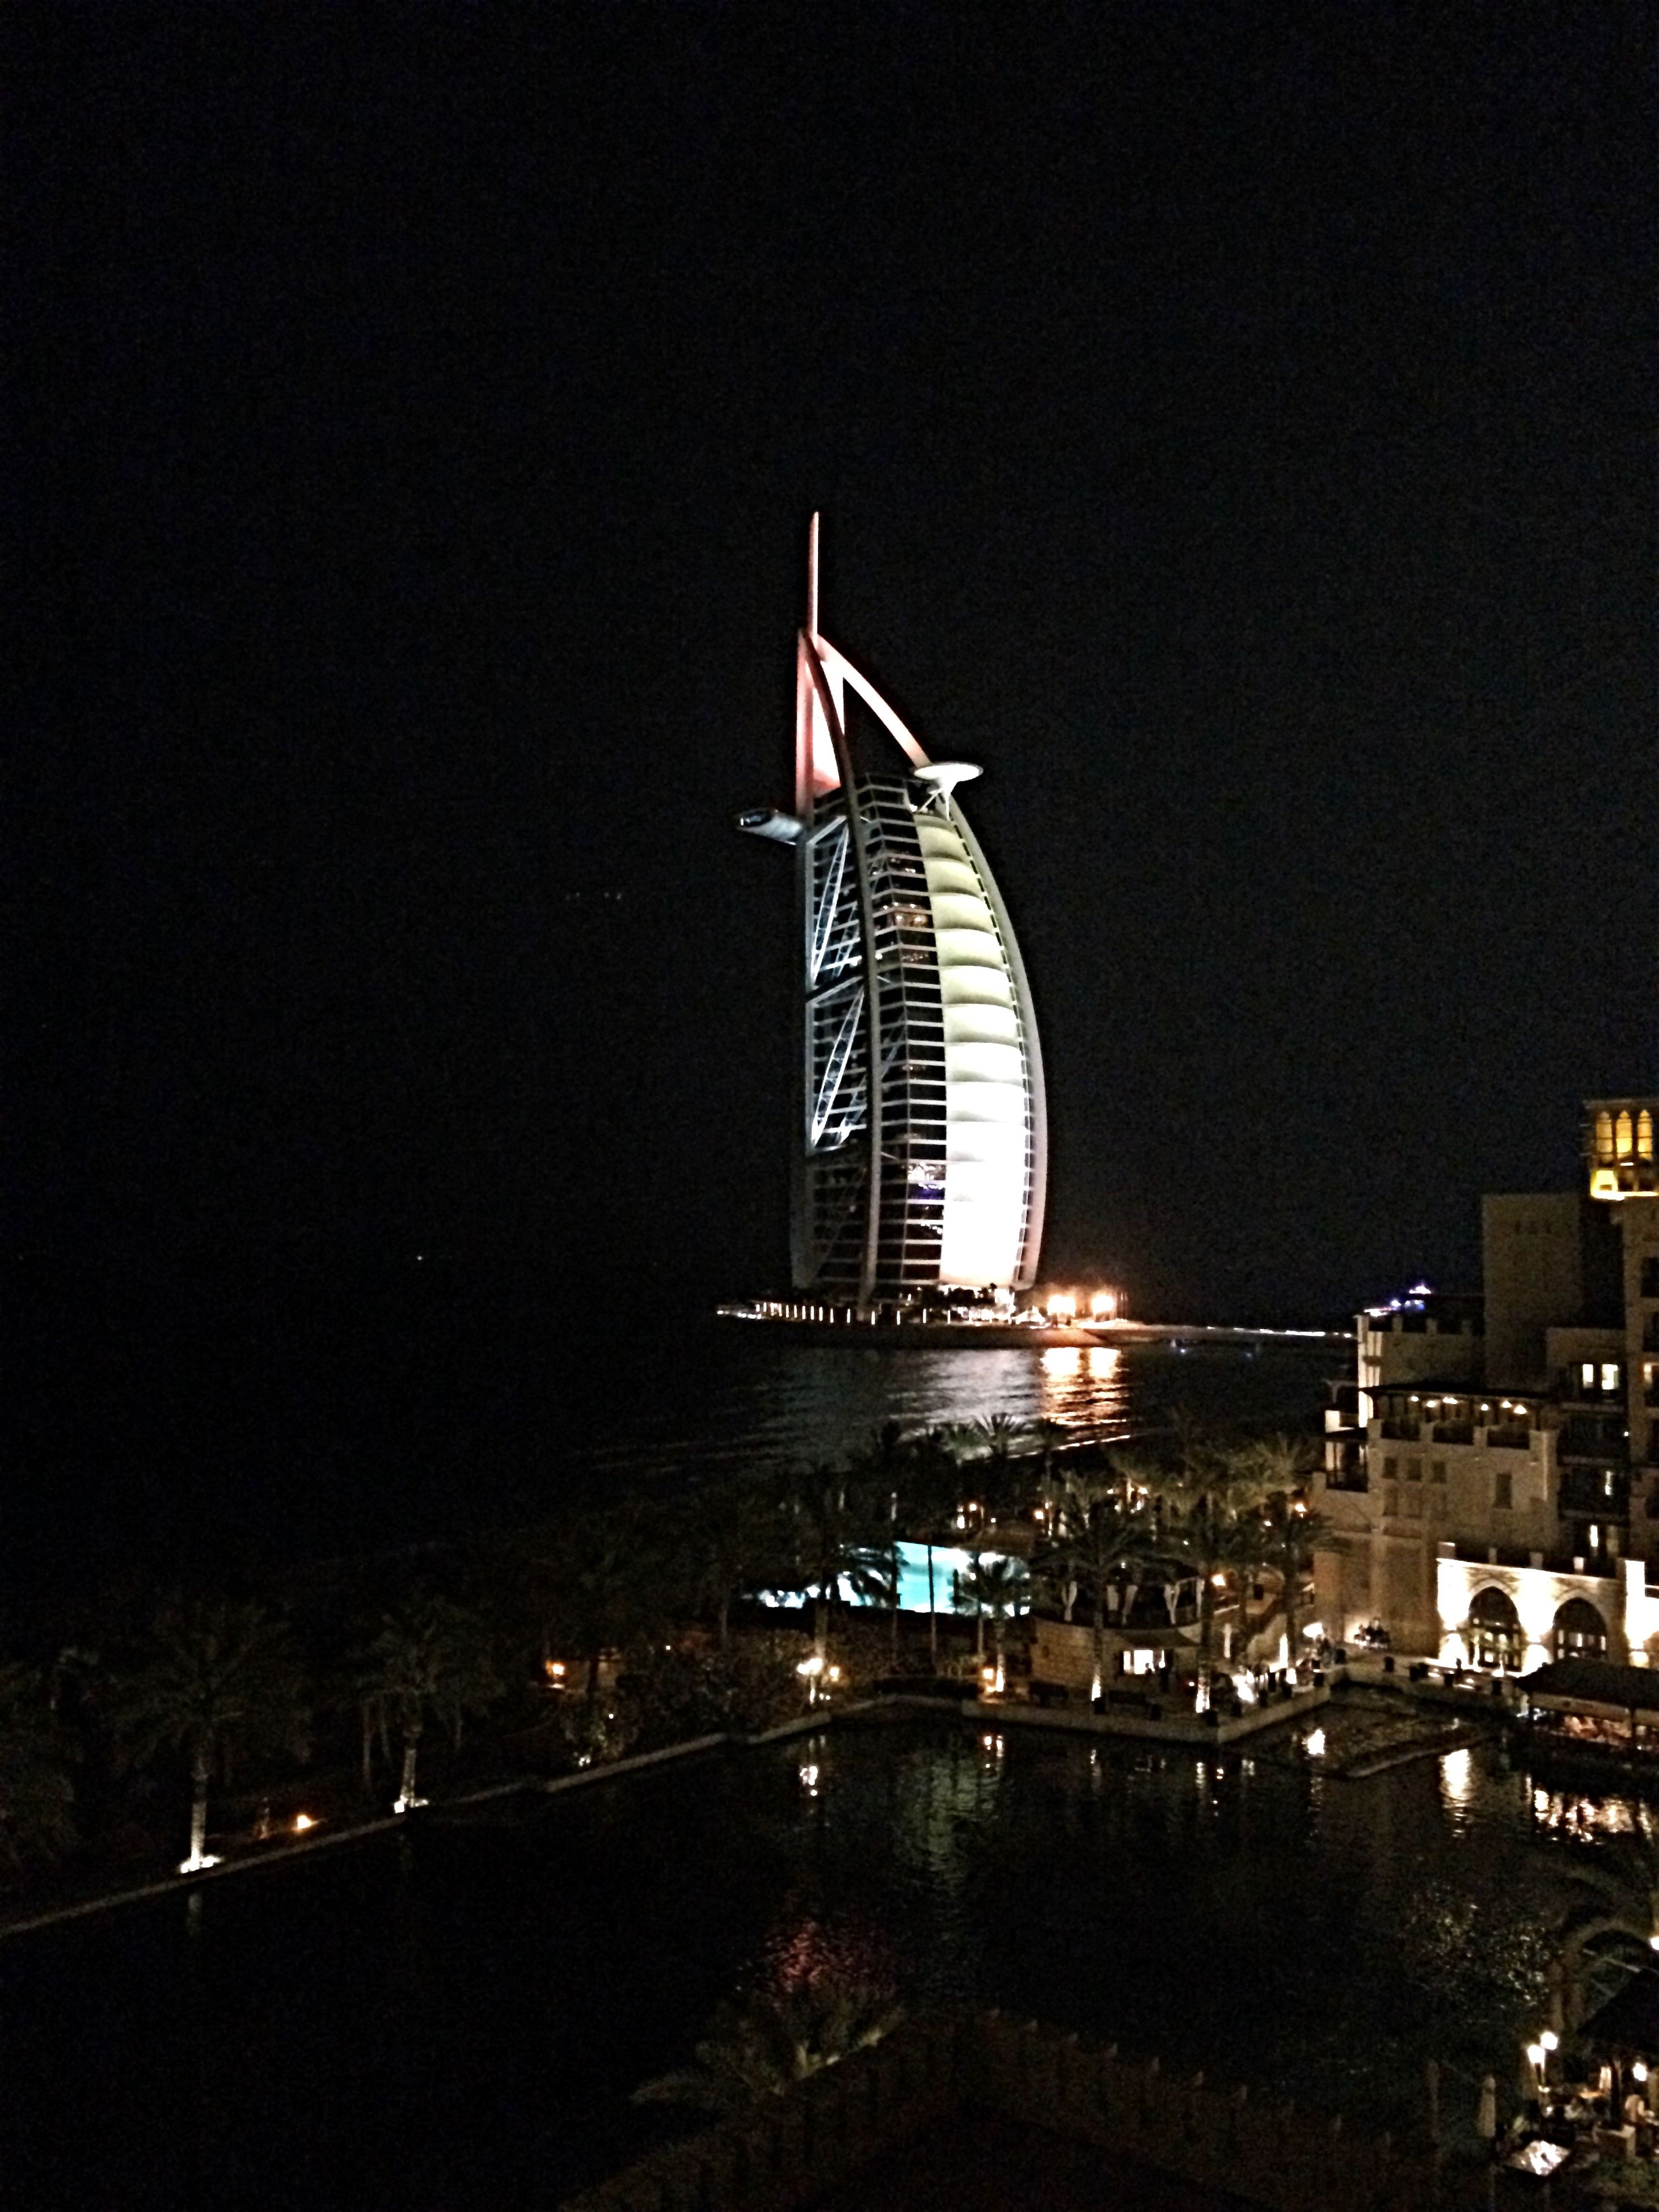 architecture, building exterior, built structure, city, night, nautical vessel, transportation, clear sky, modern, water, illuminated, river, skyscraper, copy space, boat, mode of transport, office building, cityscape, travel, outdoors